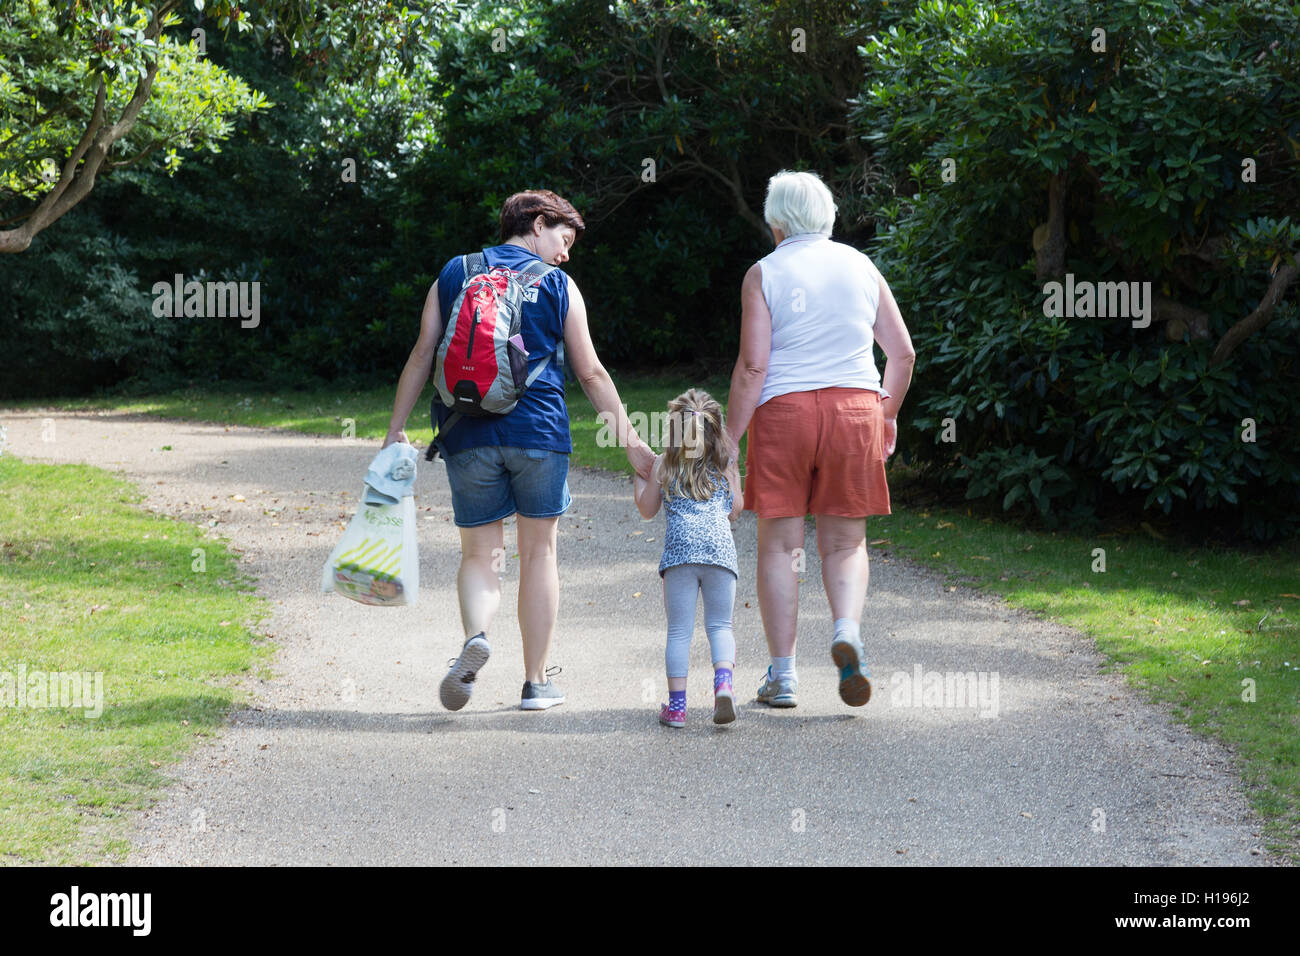 Three generations of women; child, mother and grandmother walking in a park, seen from the back, UK - Stock Image